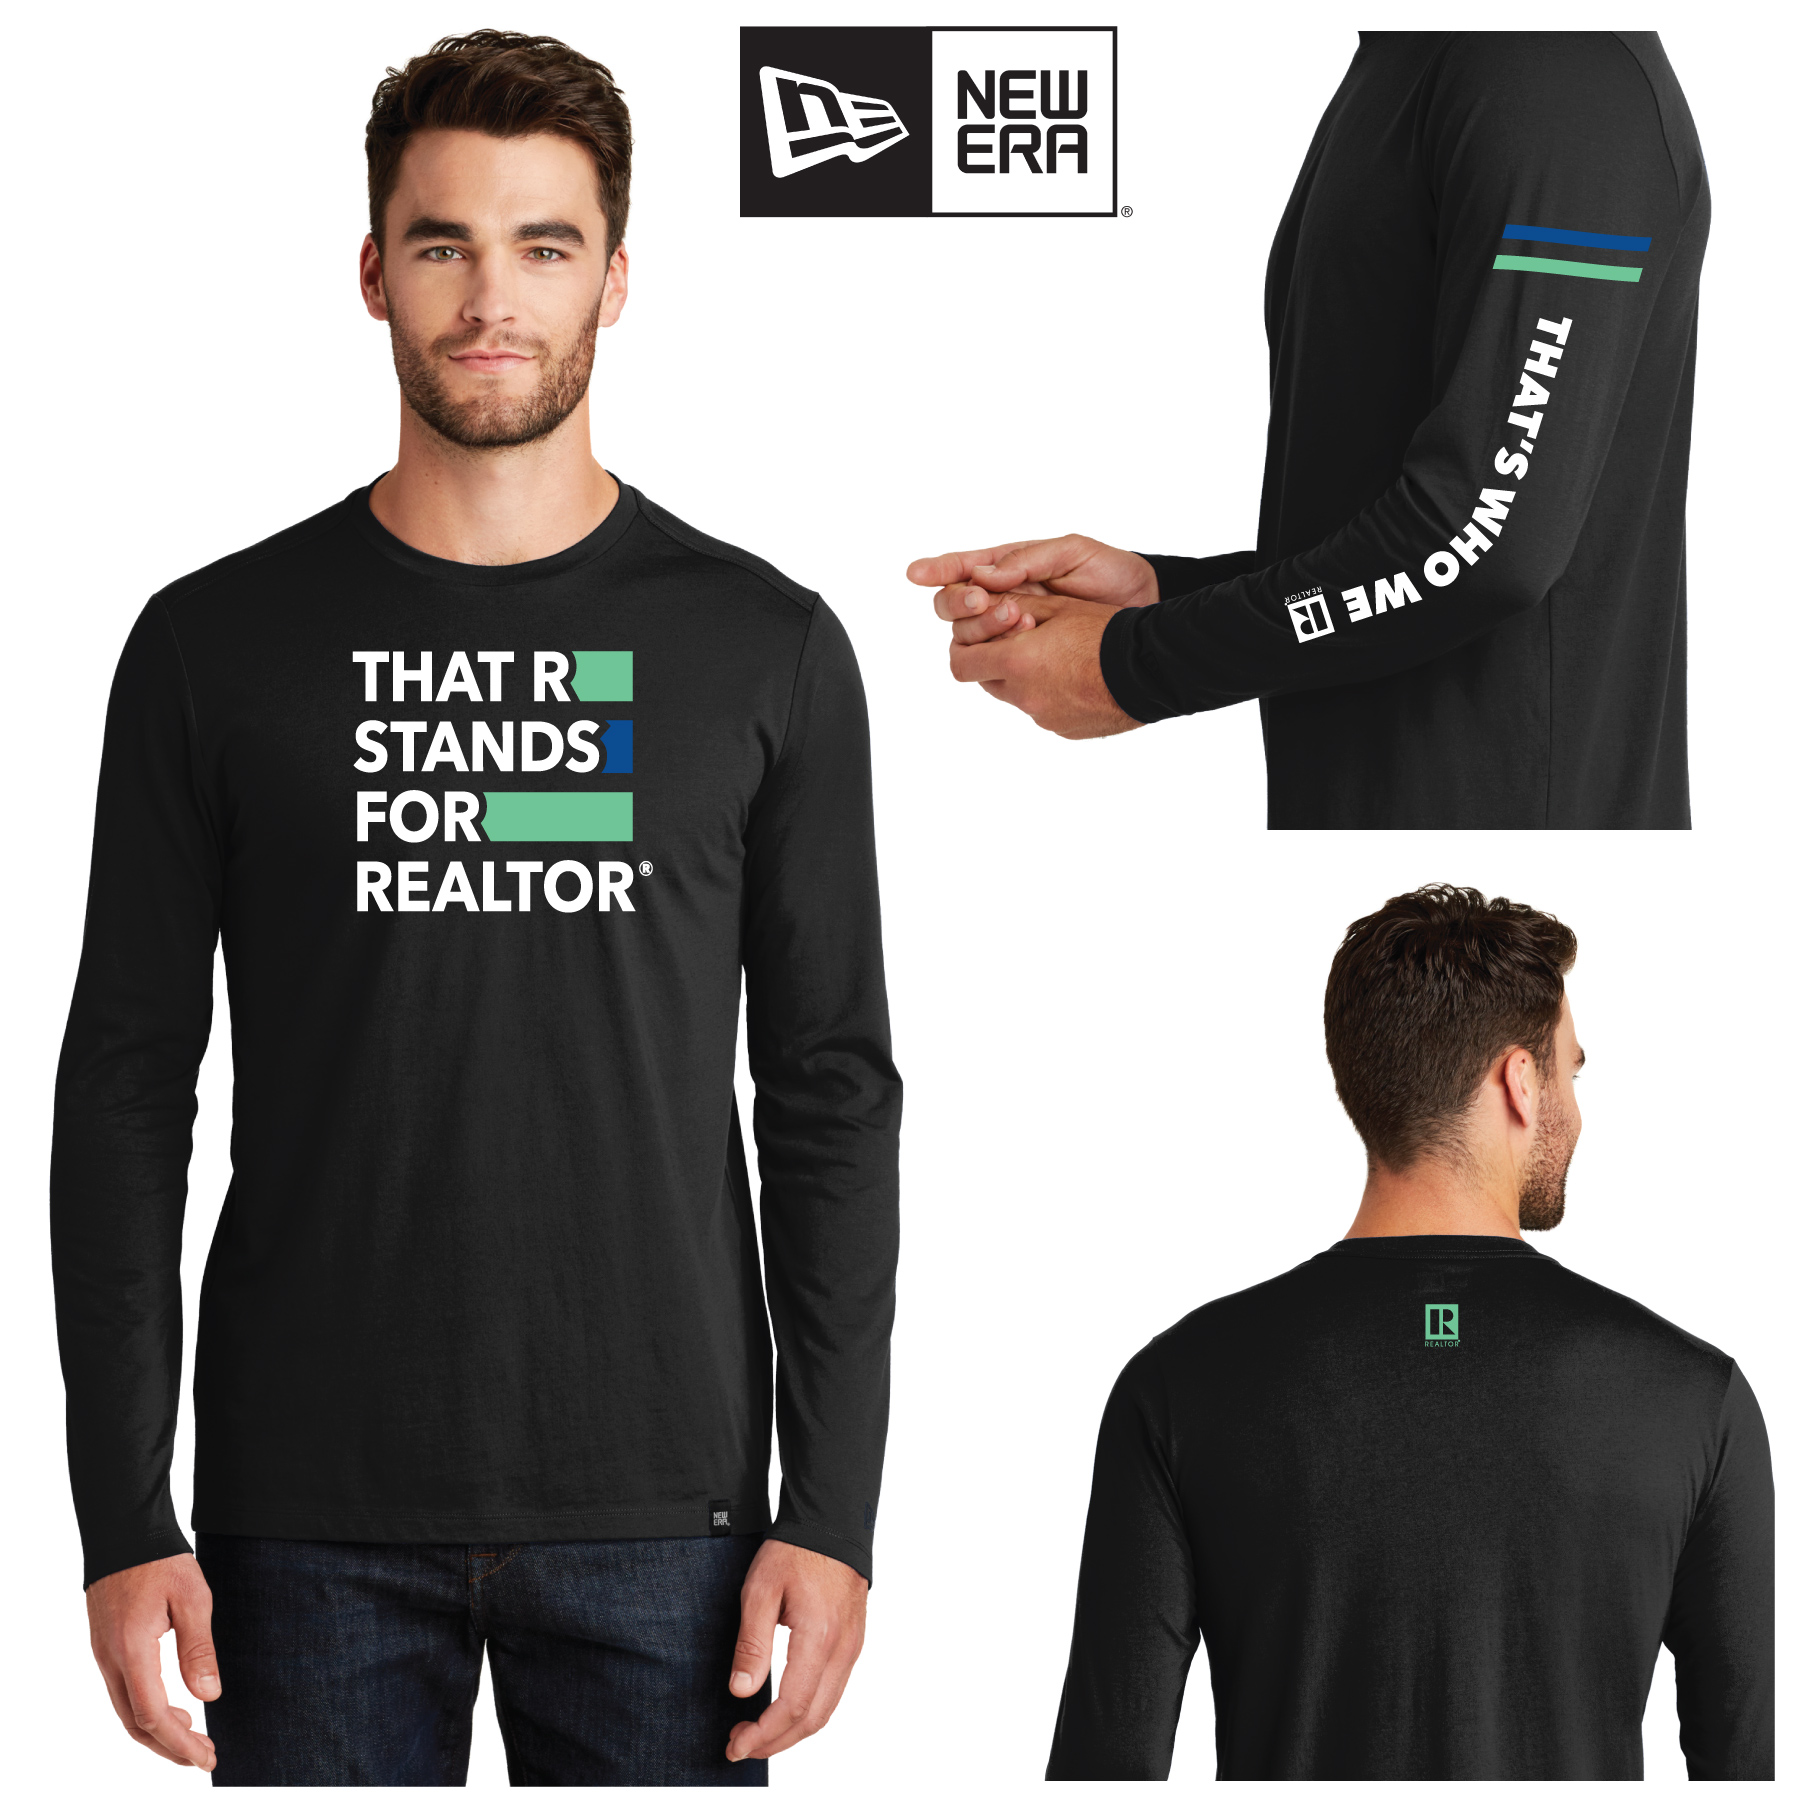 """That R Stands for REALTOR®"" Long Sleeve New Era® Tee Shirt twwr,ThatsWhoWeR,That's,TWWR,ThatWho,That'sWho,Twwr,Thats,Whos,We,Ares,Tees,T-shirt,Tee,Casual,Values,Tees,NewEra,Longs,Sleeves"